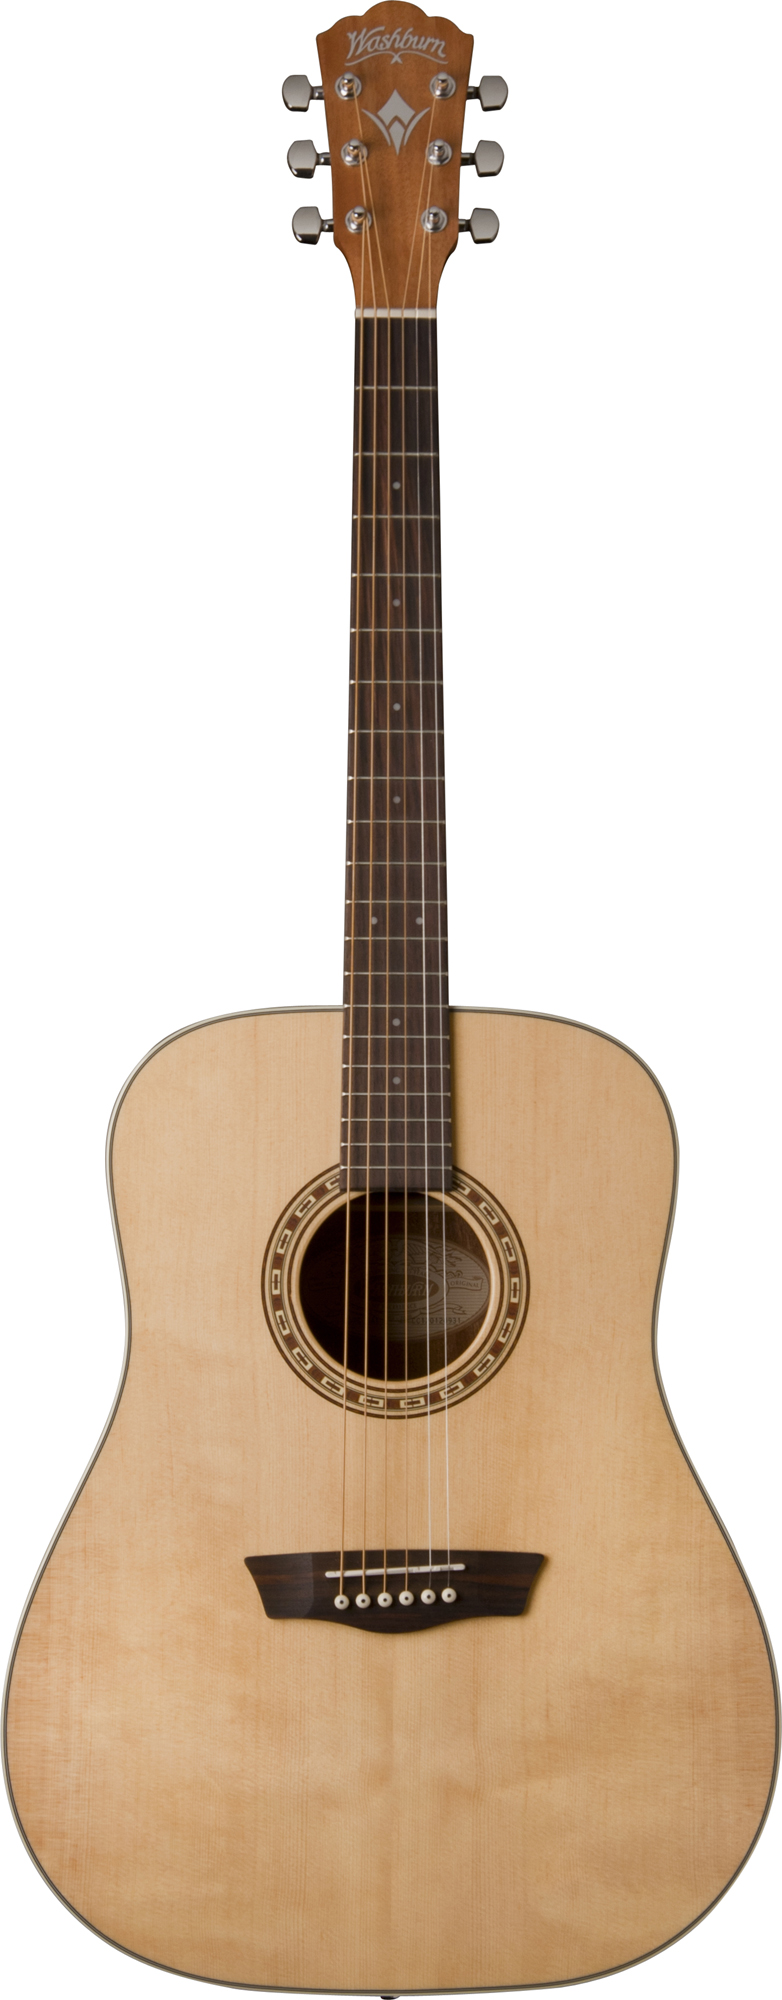 Washburn WD7S Dreadnought Style Guitar with Catalpa Back & Sides Natural Finish